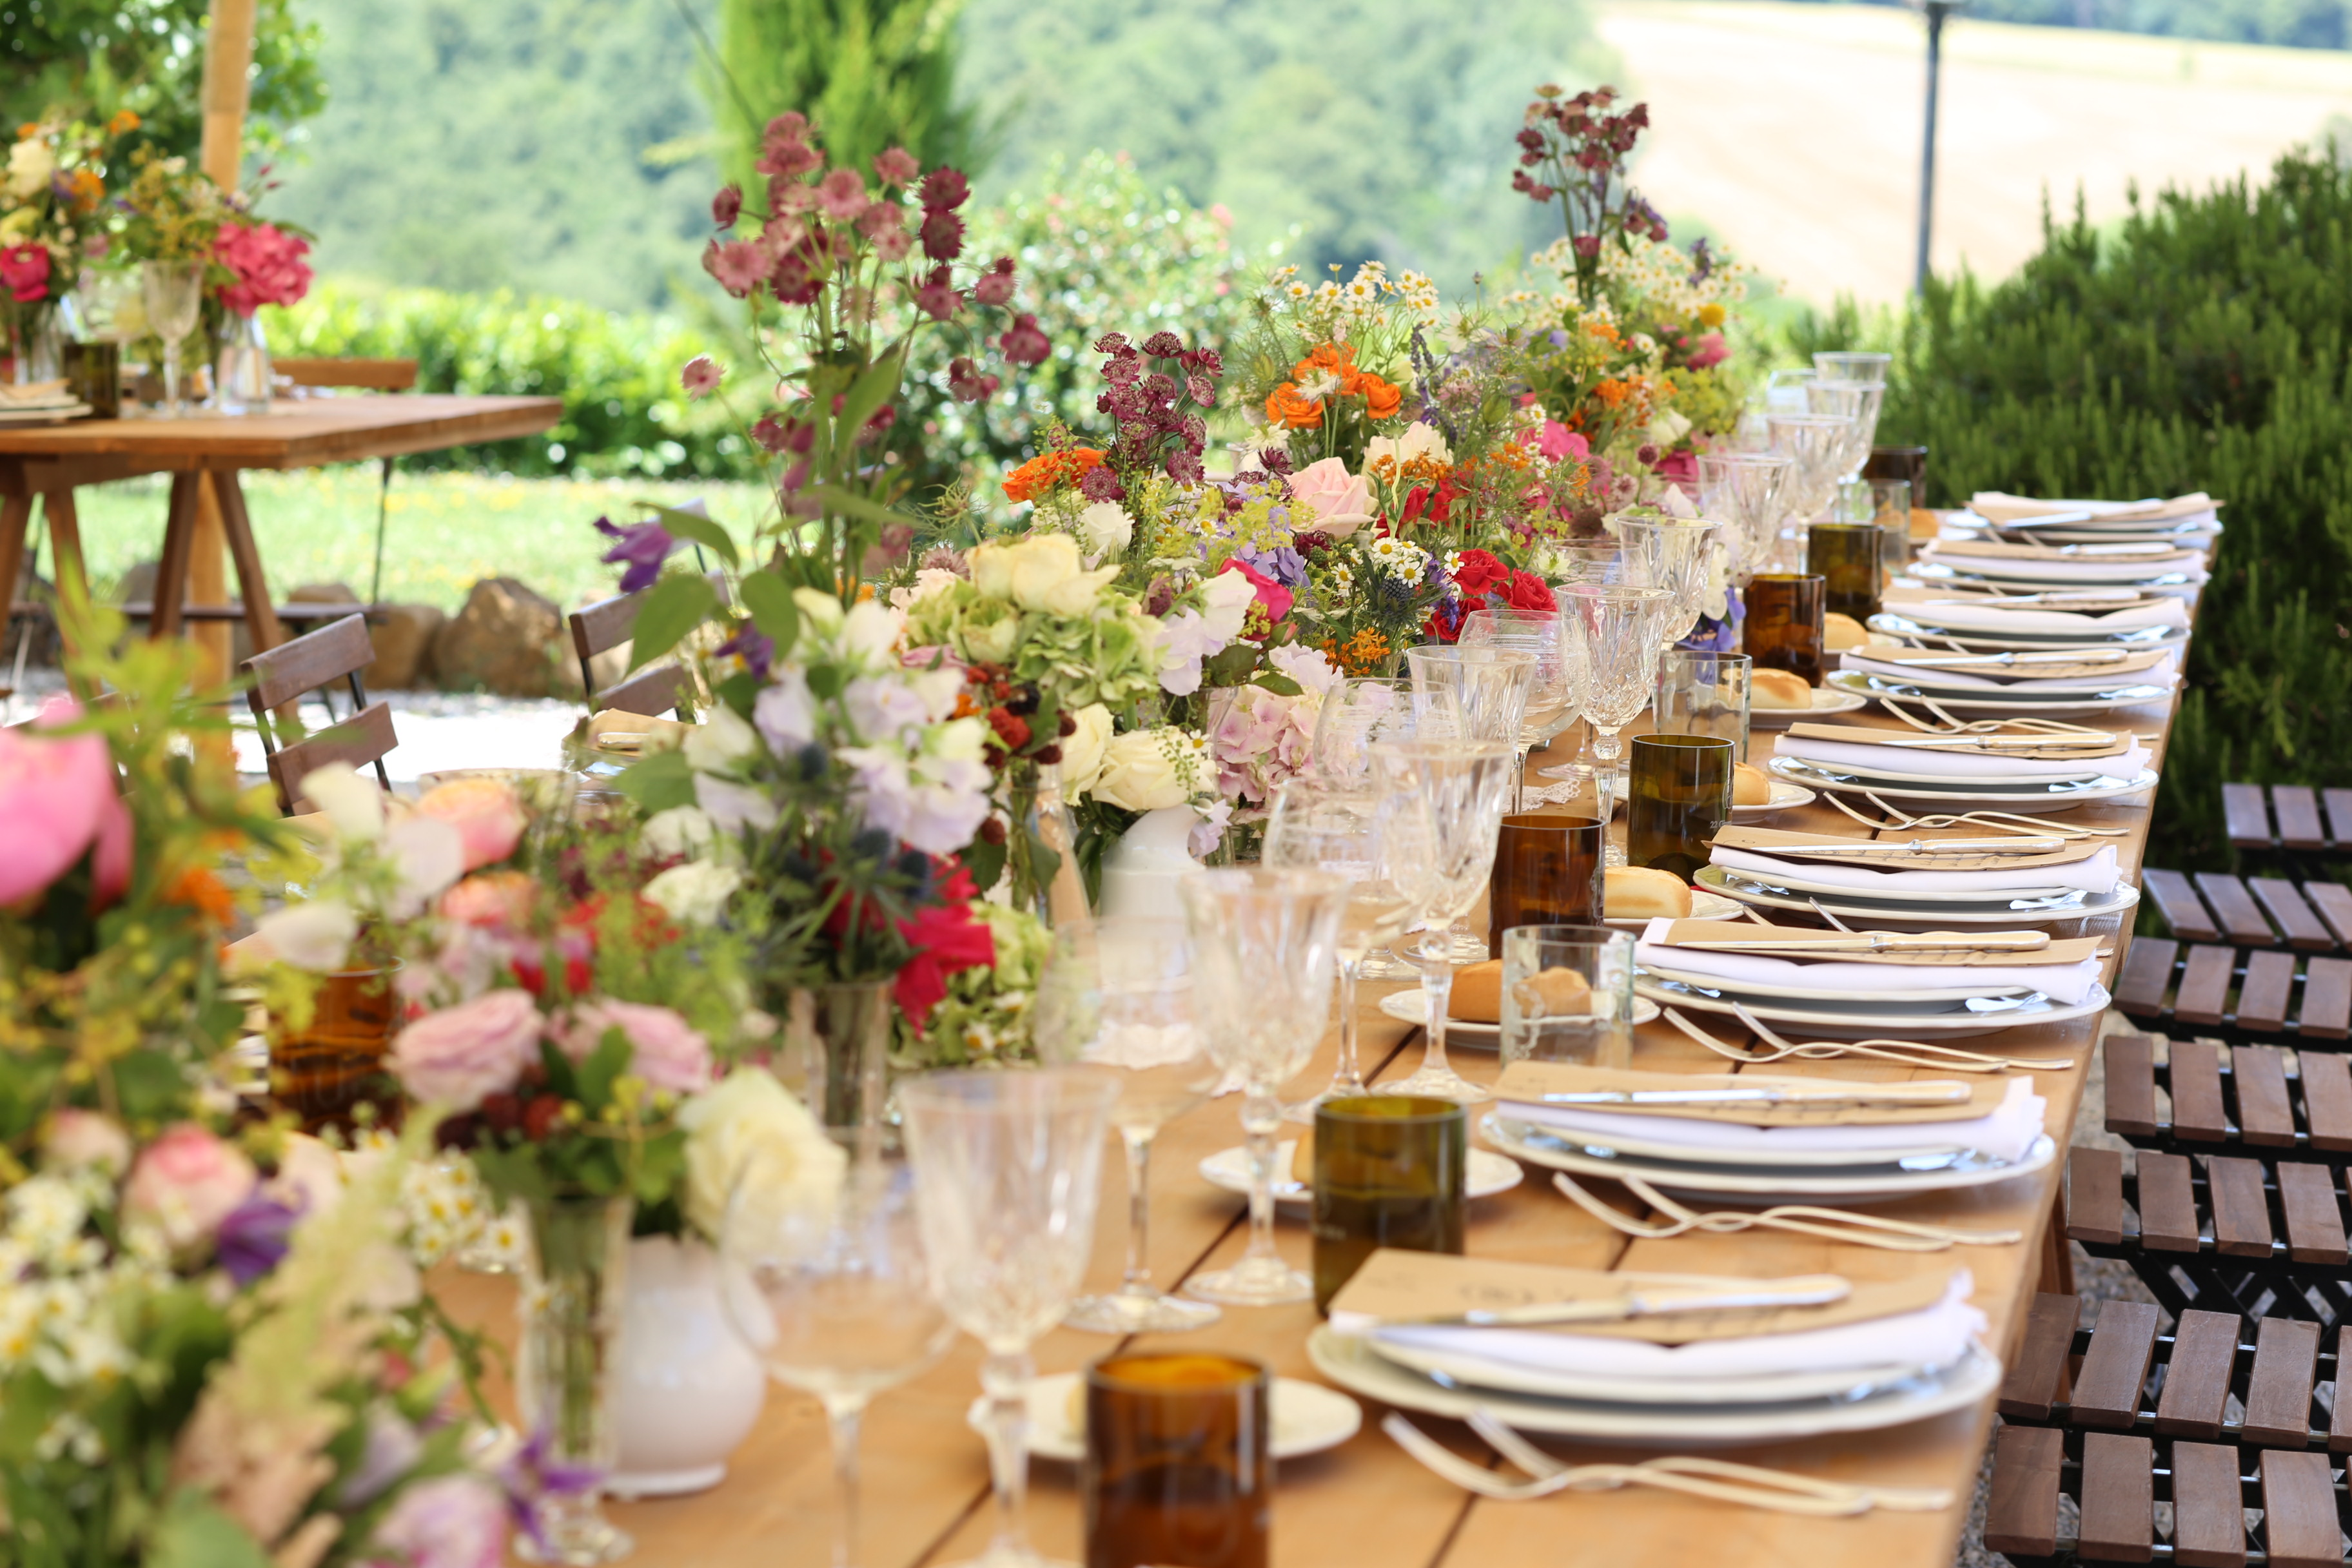 ... Wedding lunch in Tuscany & Tuscany: perfect setting for photo shootings | Visit Tuscany